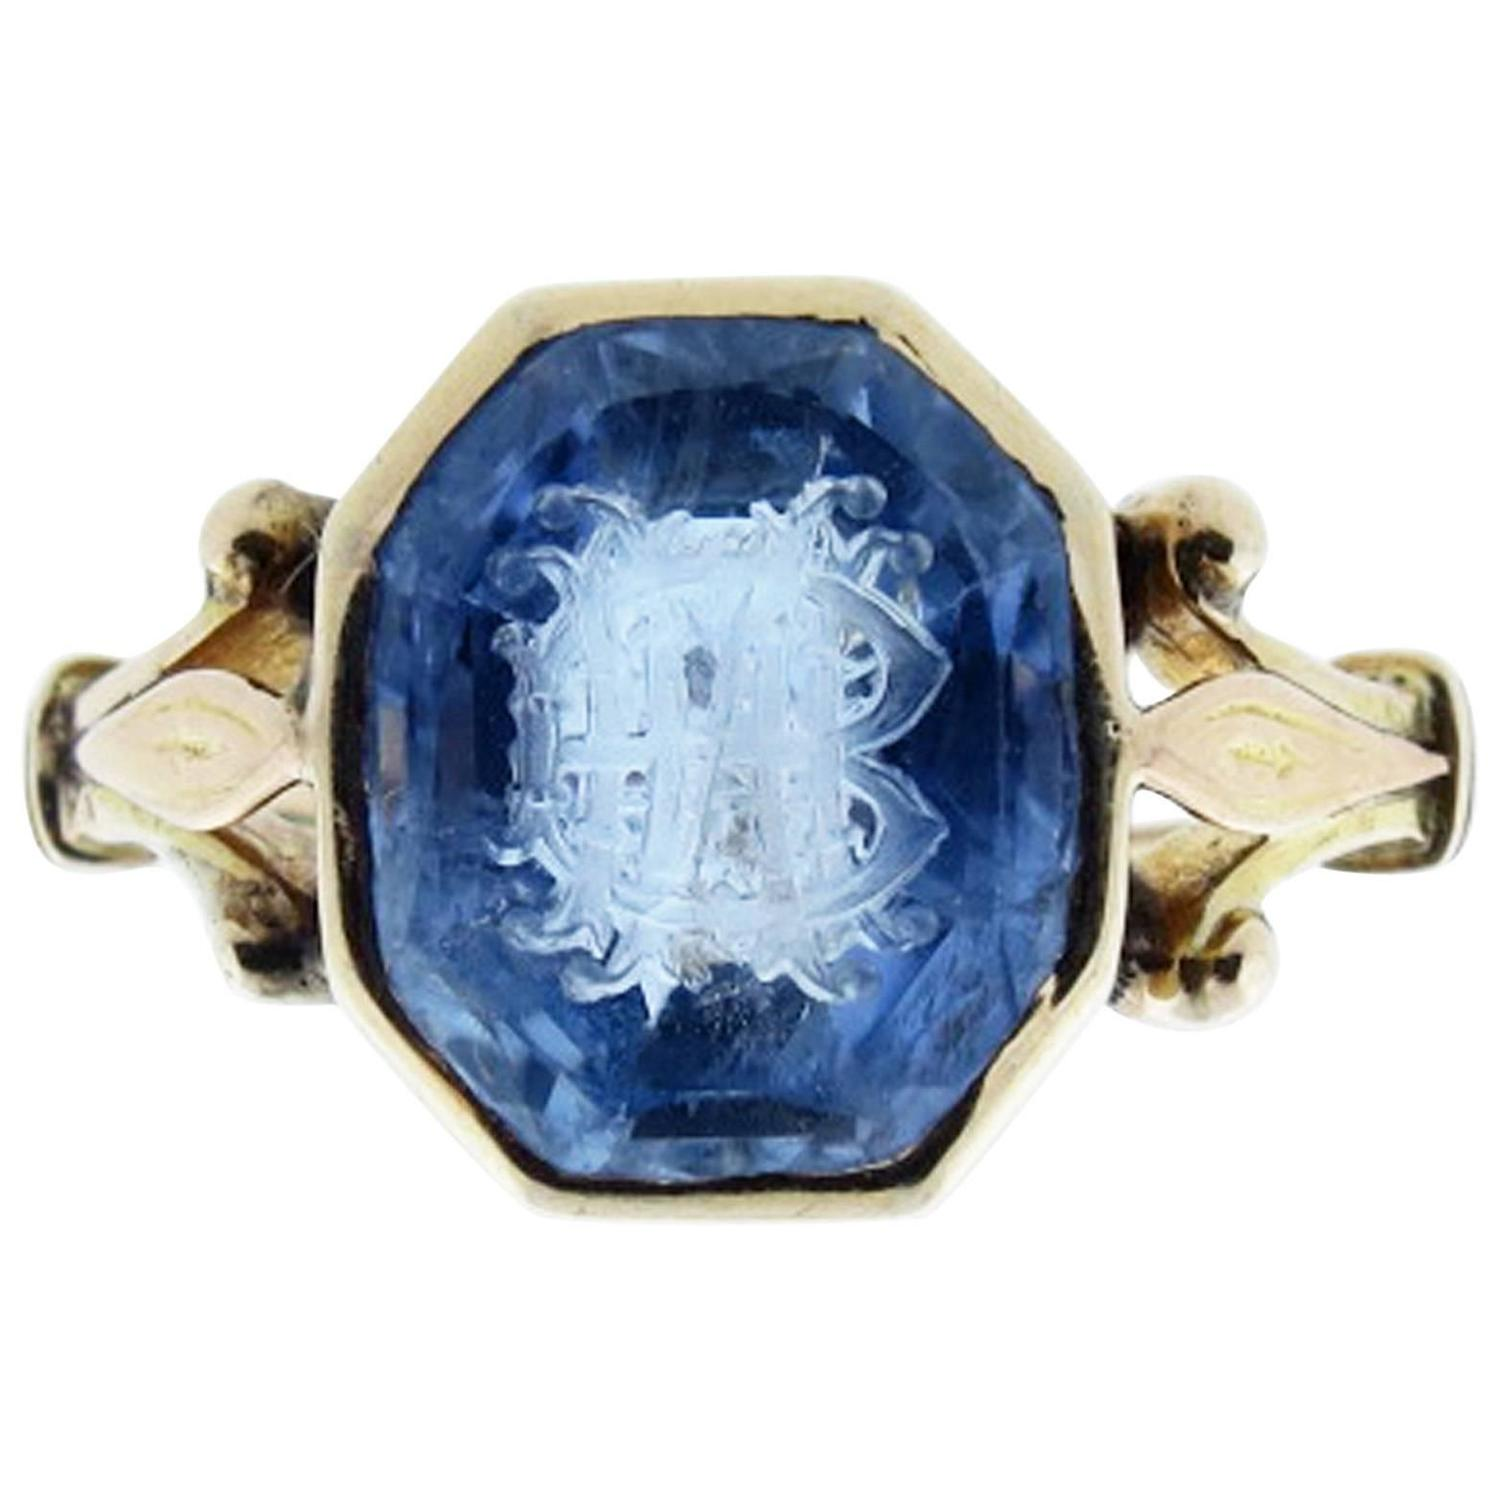 Antique Natural Carved Sapphire Gold Signet Ring At 1stdibs